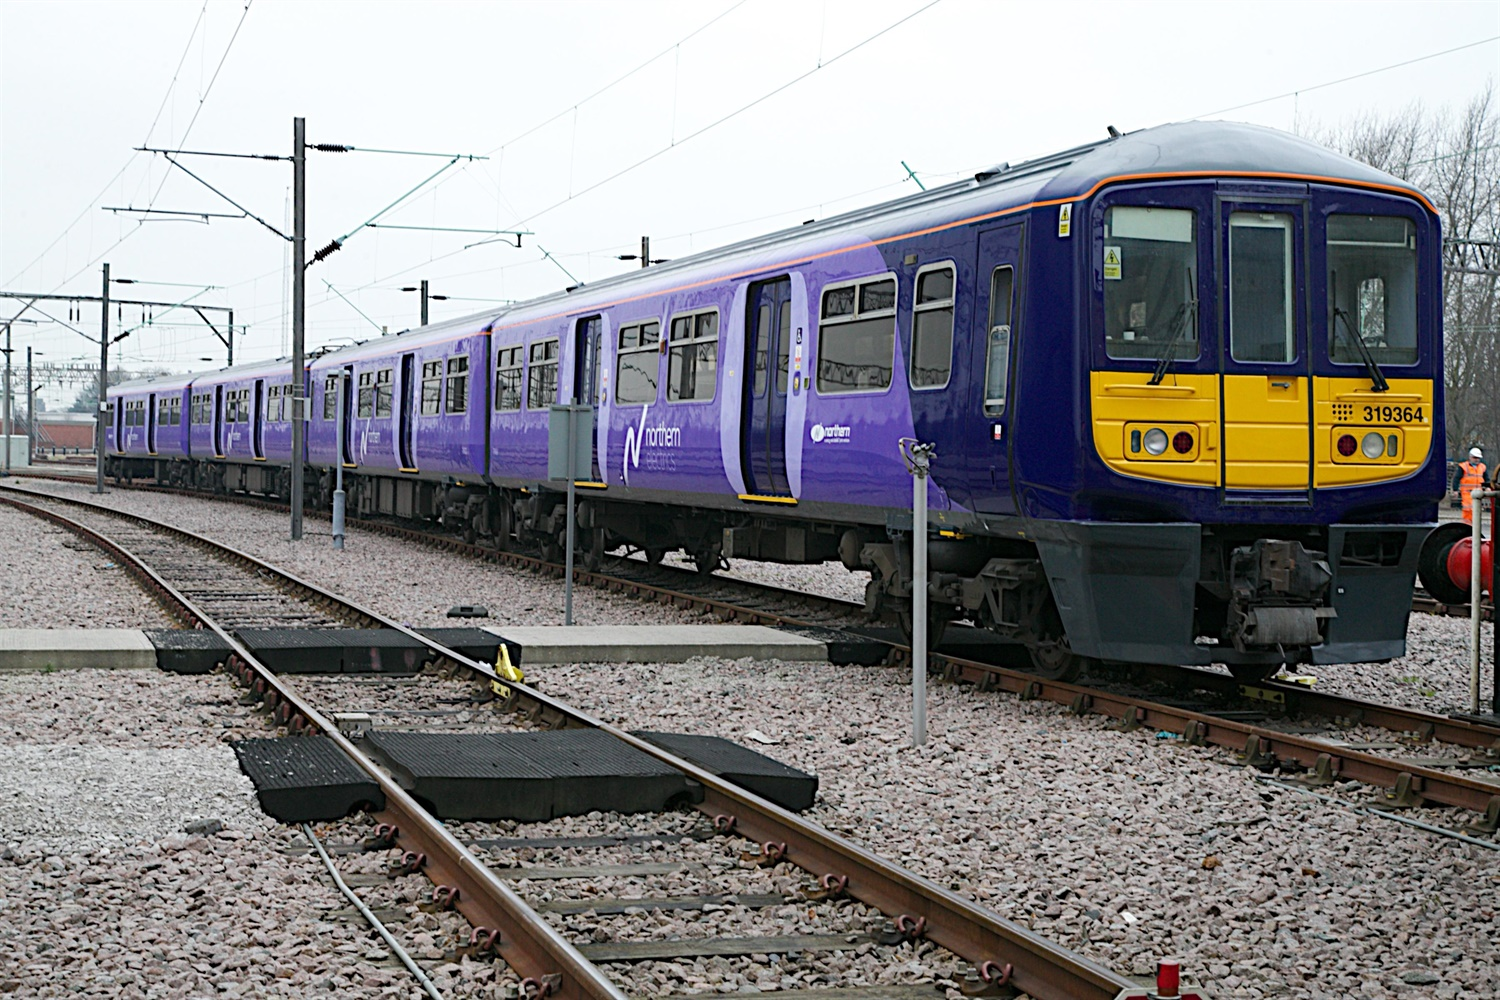 Northern Rail plans to start running electric services next week